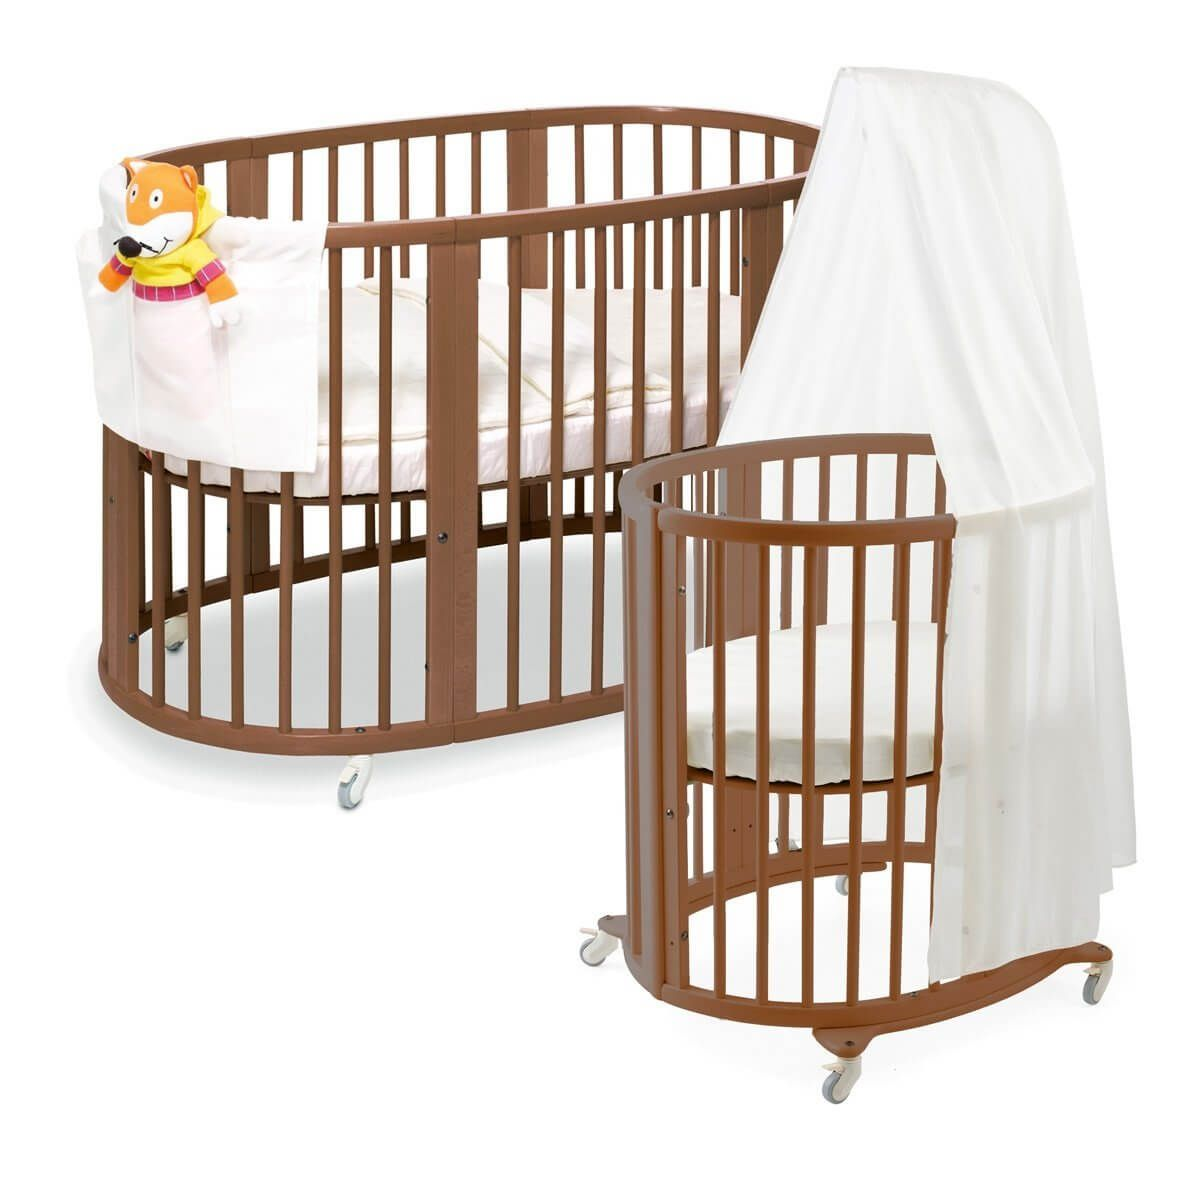 16 Beautiful Oval Round Baby Cribs For Unique Nursery Decor